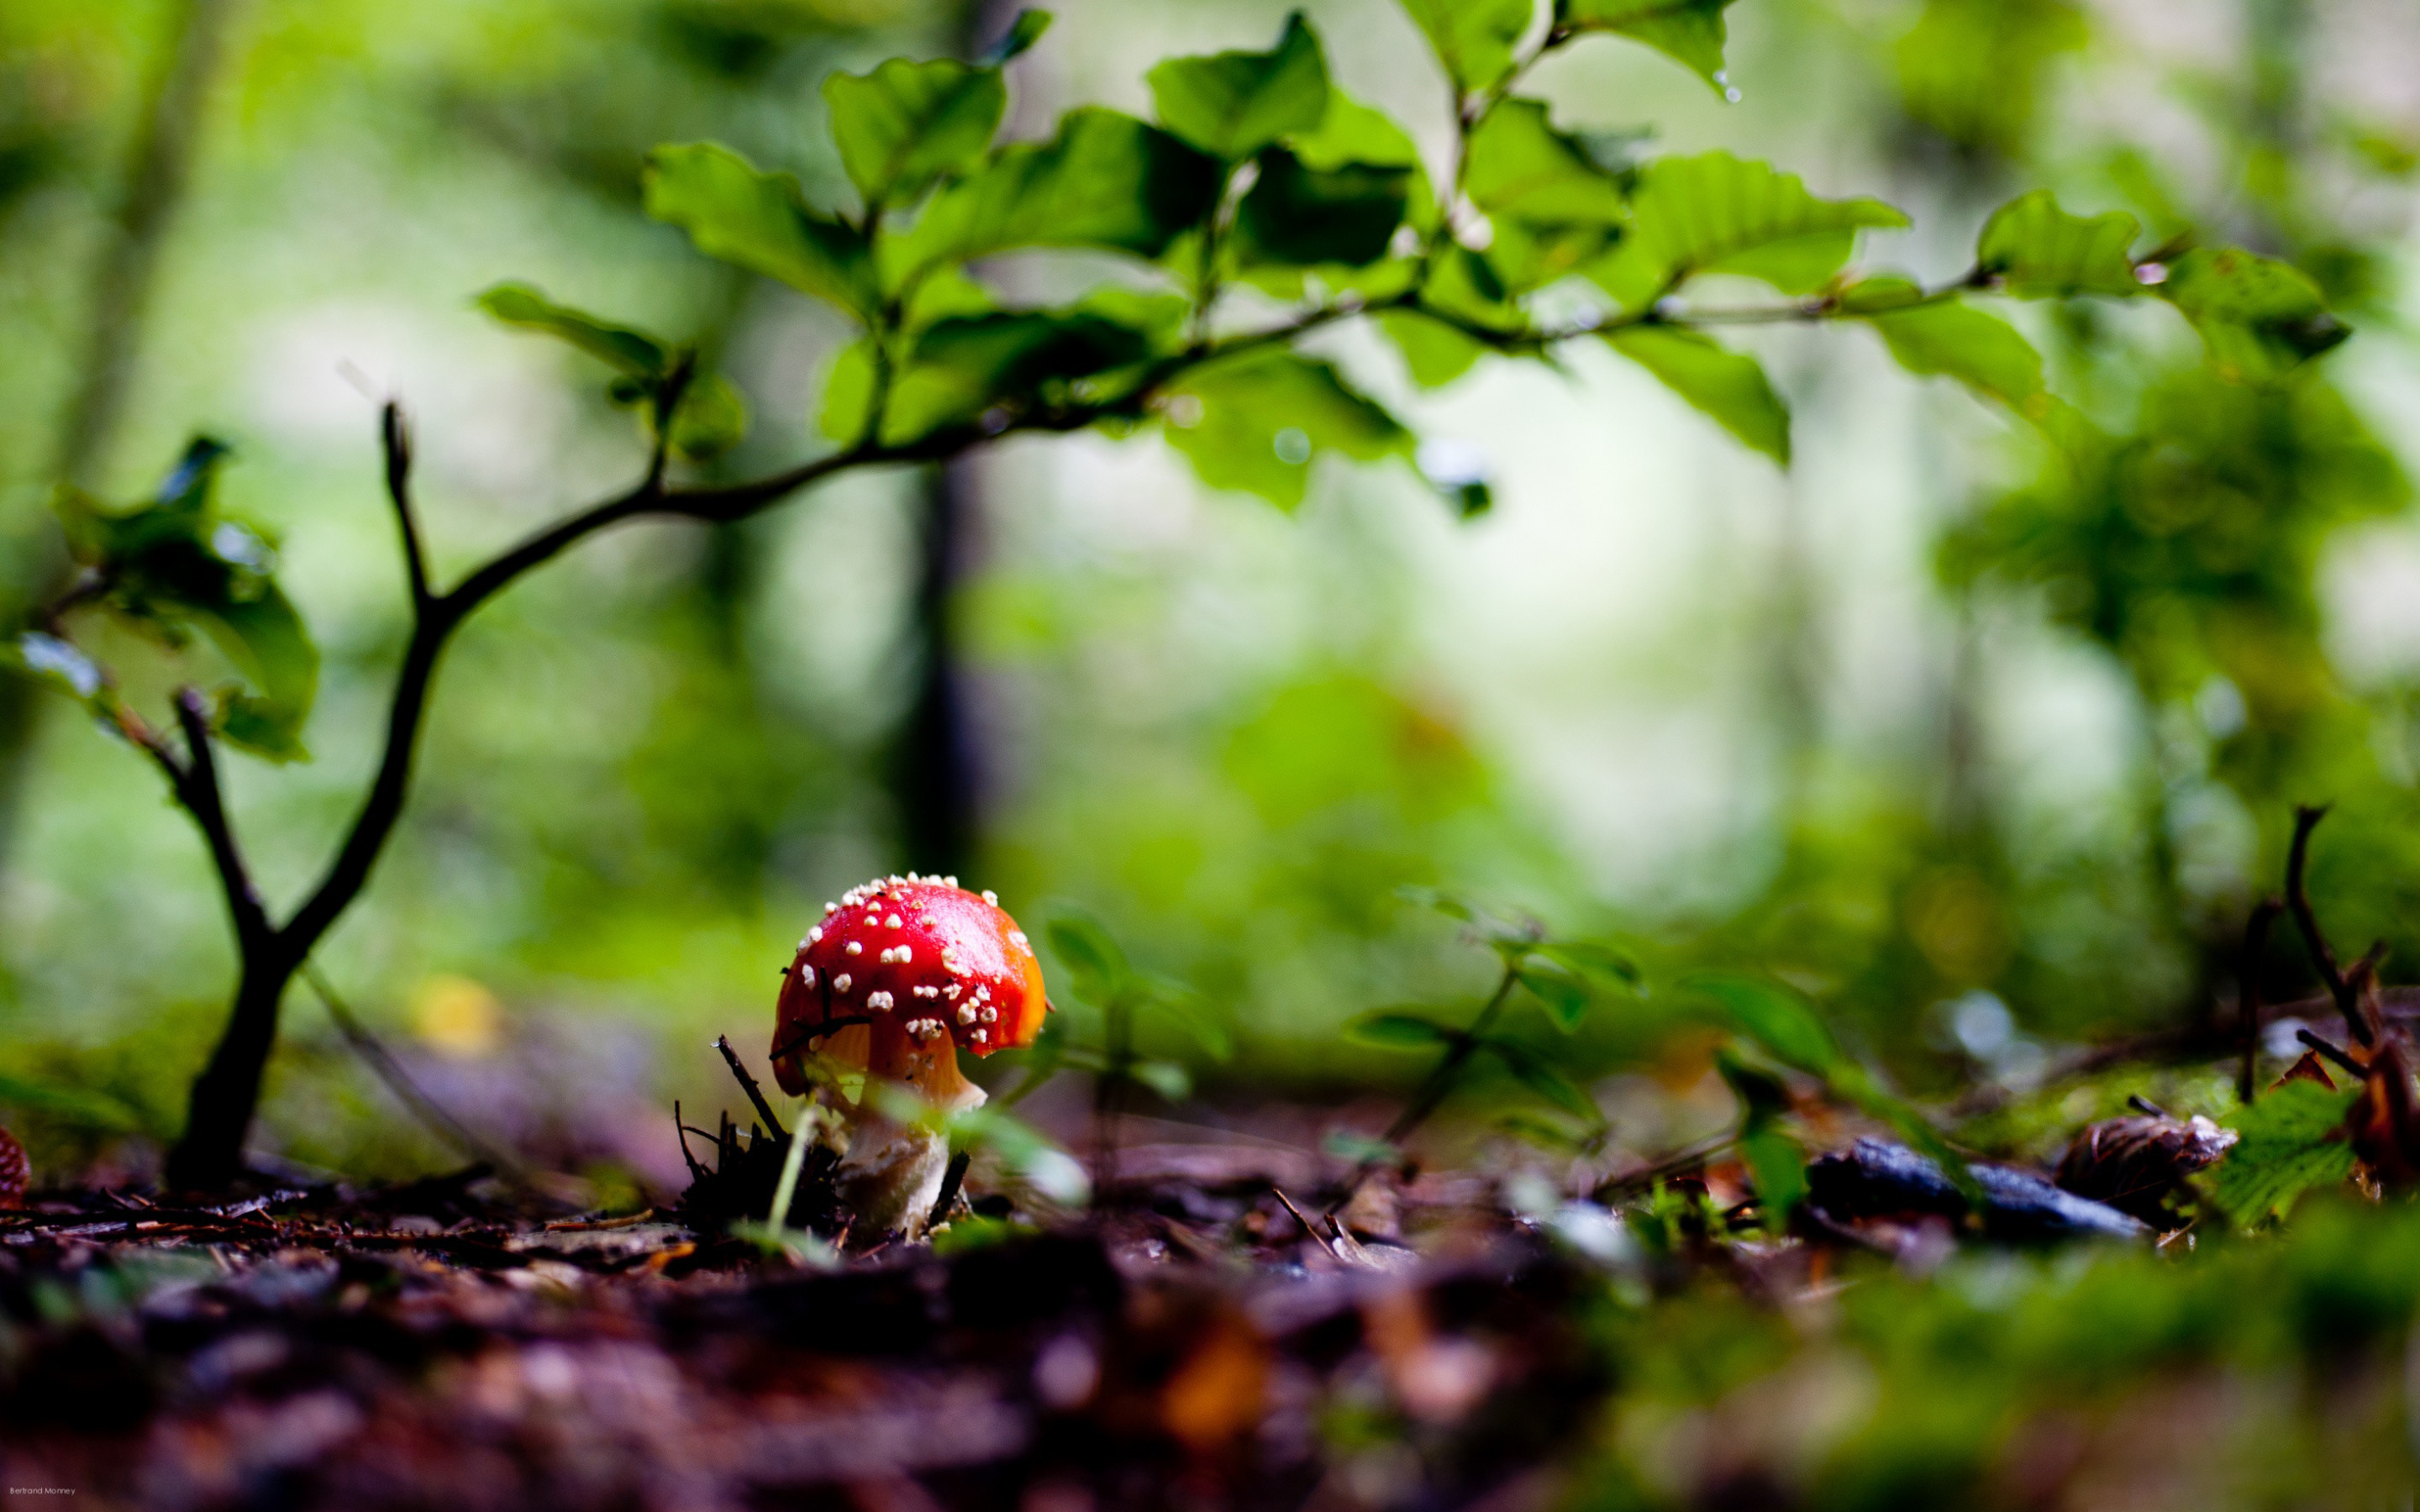 Fantastic Free Images for a Mushroom Wallpaper Background or